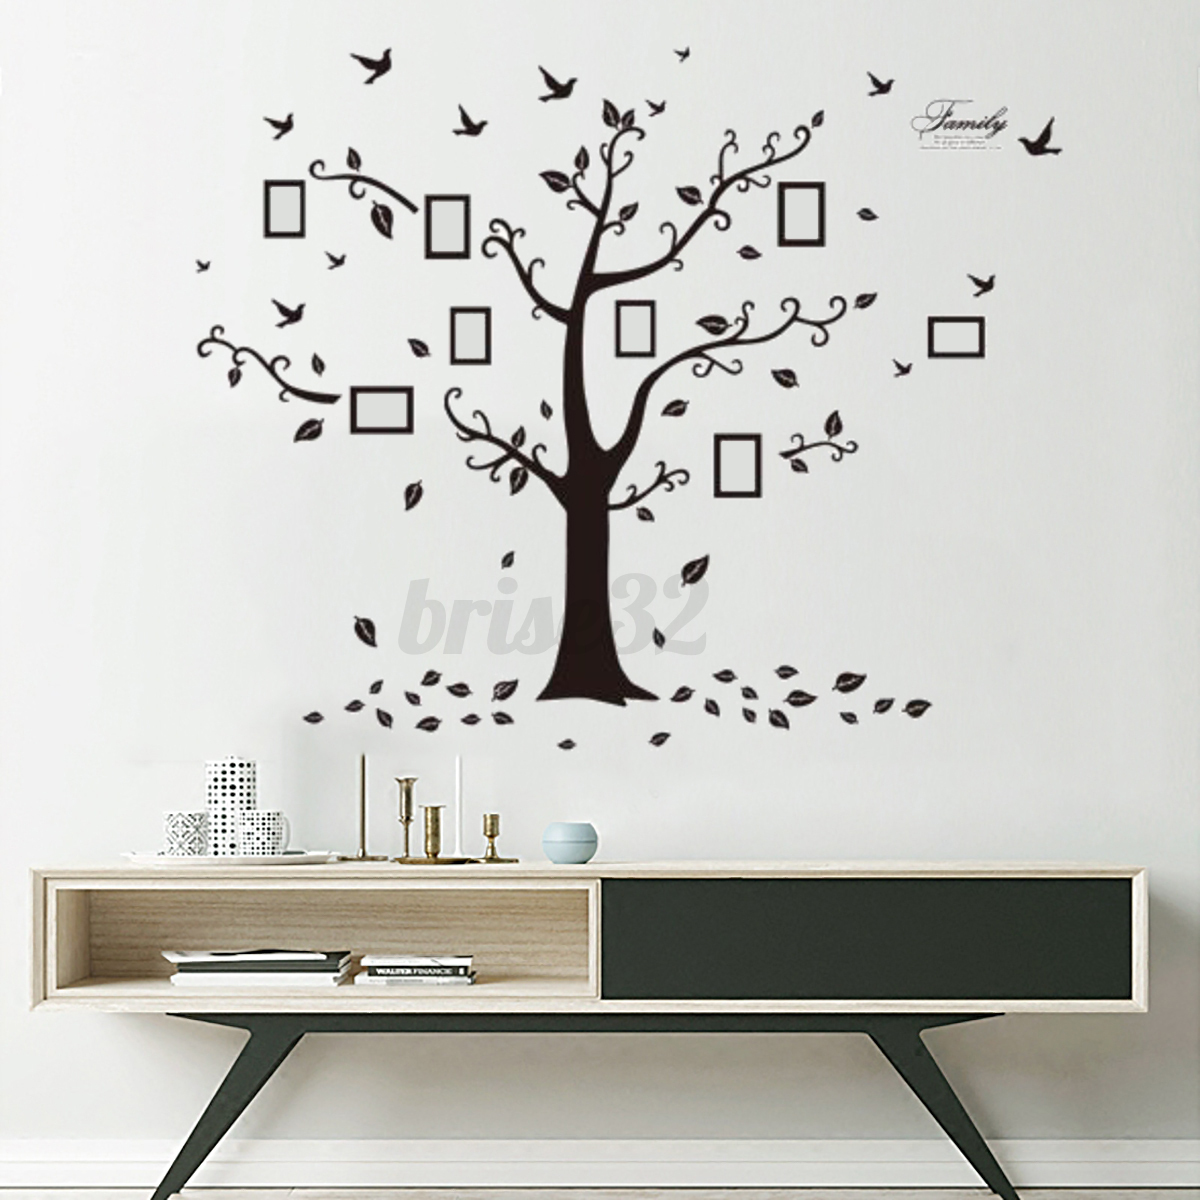 Large family tree diy decal paper art wall sticker home for Diy family tree wall mural